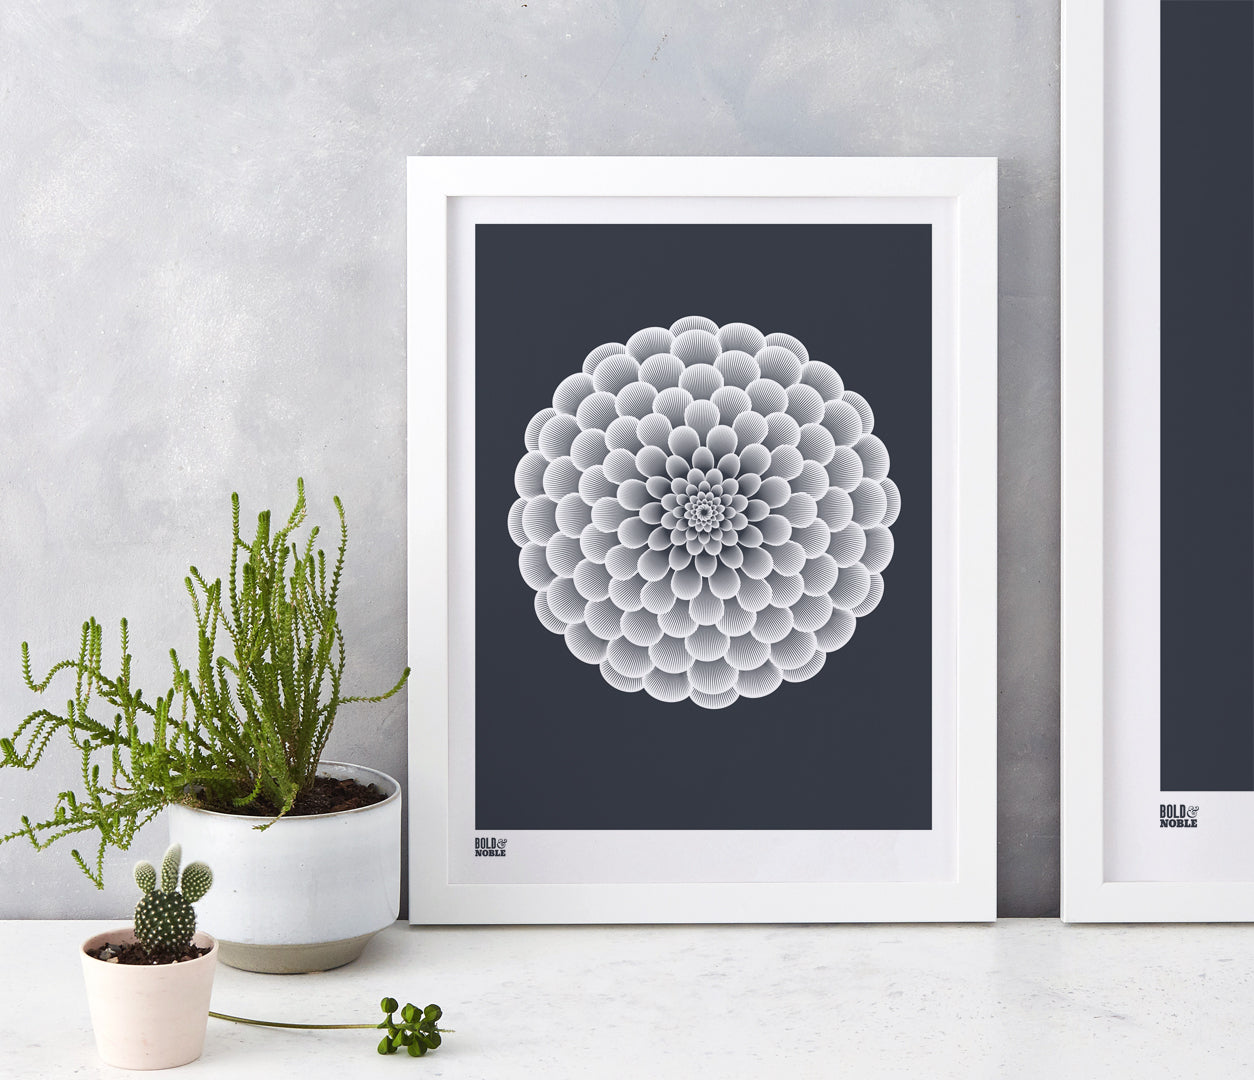 Wall Art ideas: Economical Screen Prints, Dahlia Pompon in sheer slate